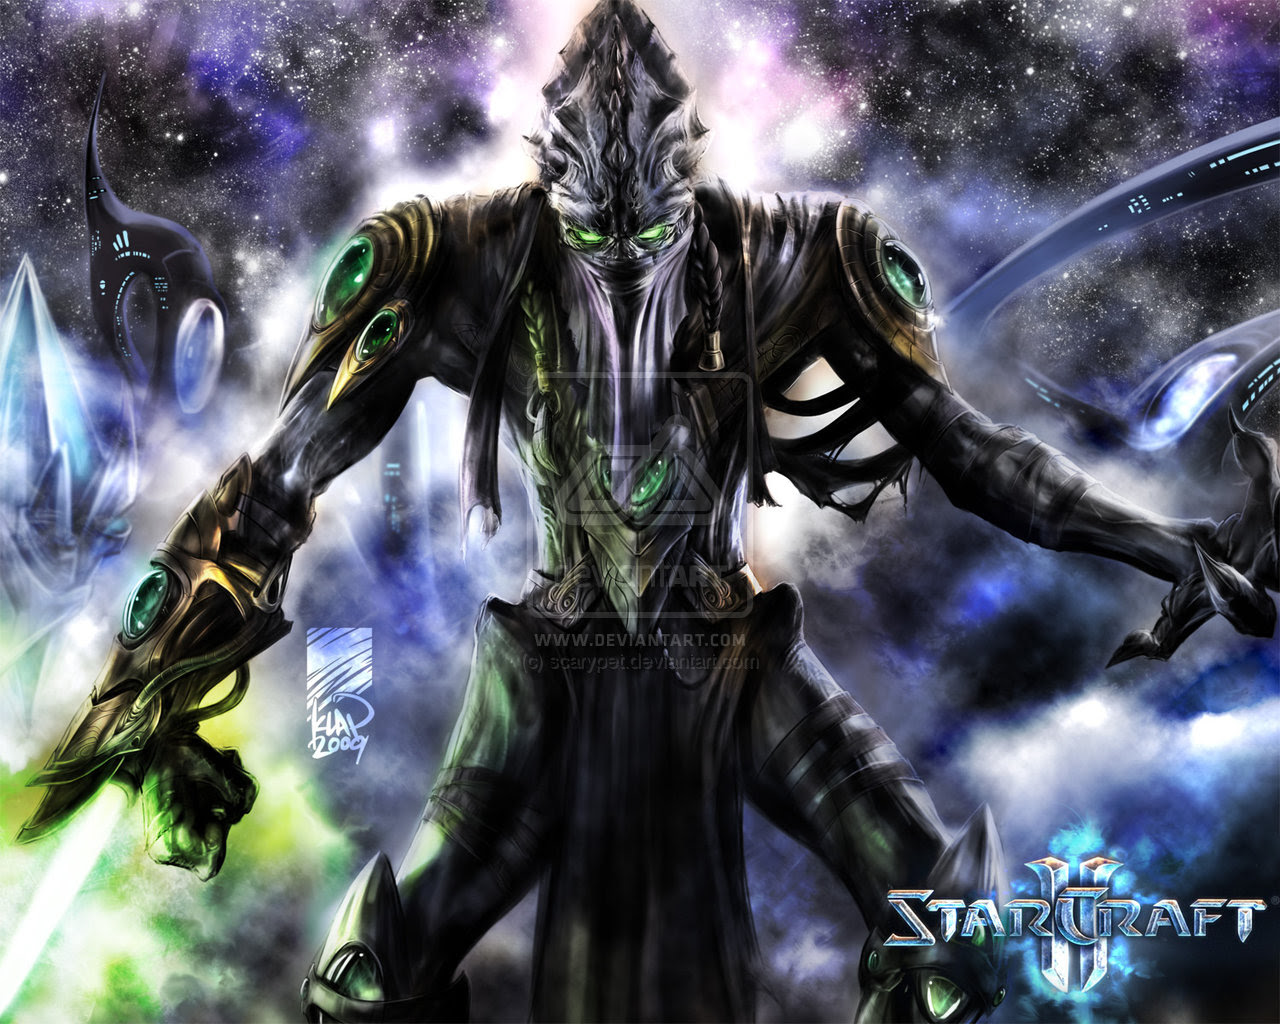 Starcraft Legacy Of The Void Wallpapers Pictures Images 1280x1024